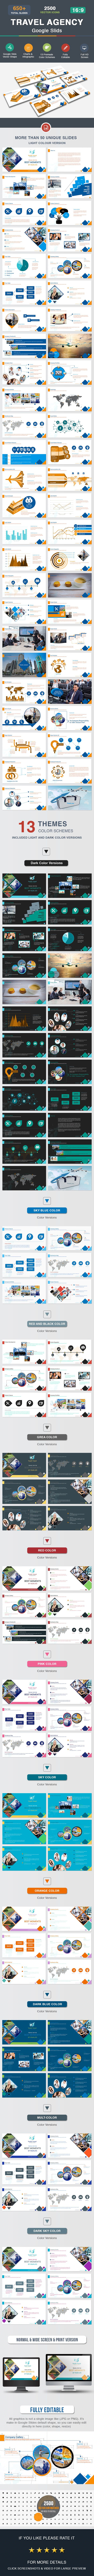 Travel Agency Google Slids Templates | Presentation templates ...